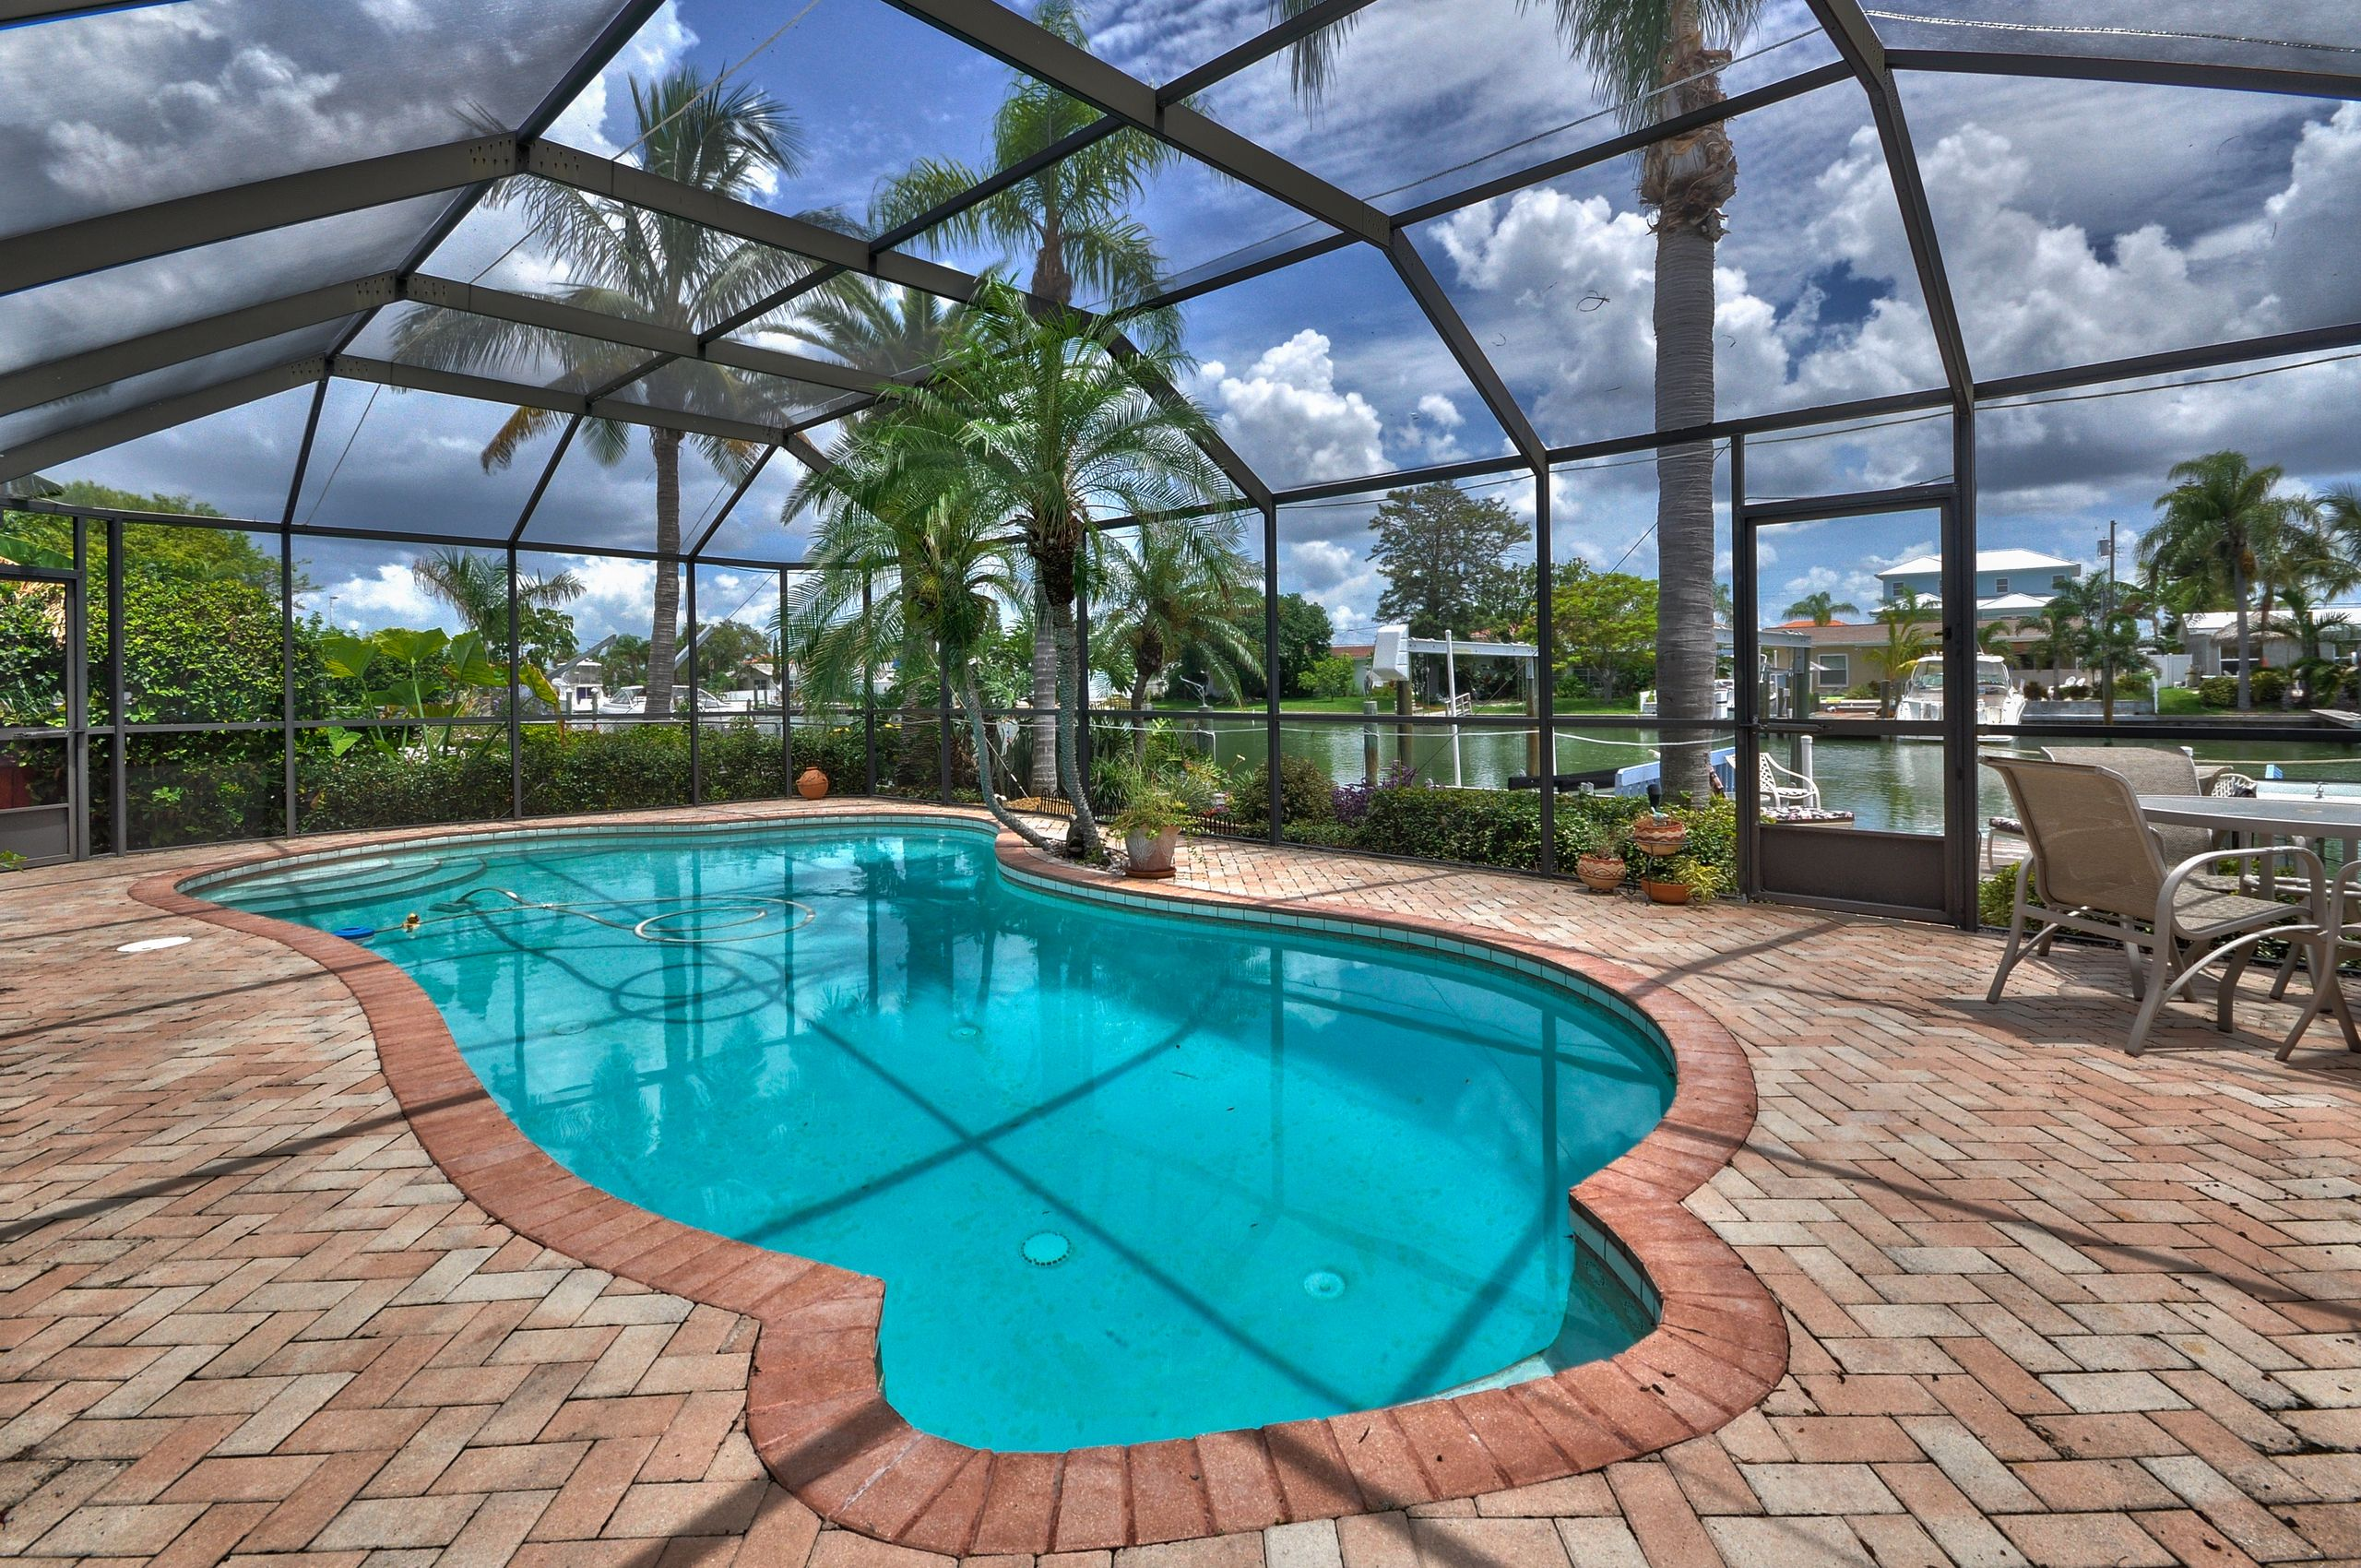 Swimming Pool Screen Enclosed Pool Accented With Pavers Madeirabeach Crystalisland Florida Water Fancy Houses Dream Backyard Waterfront Property For Sale